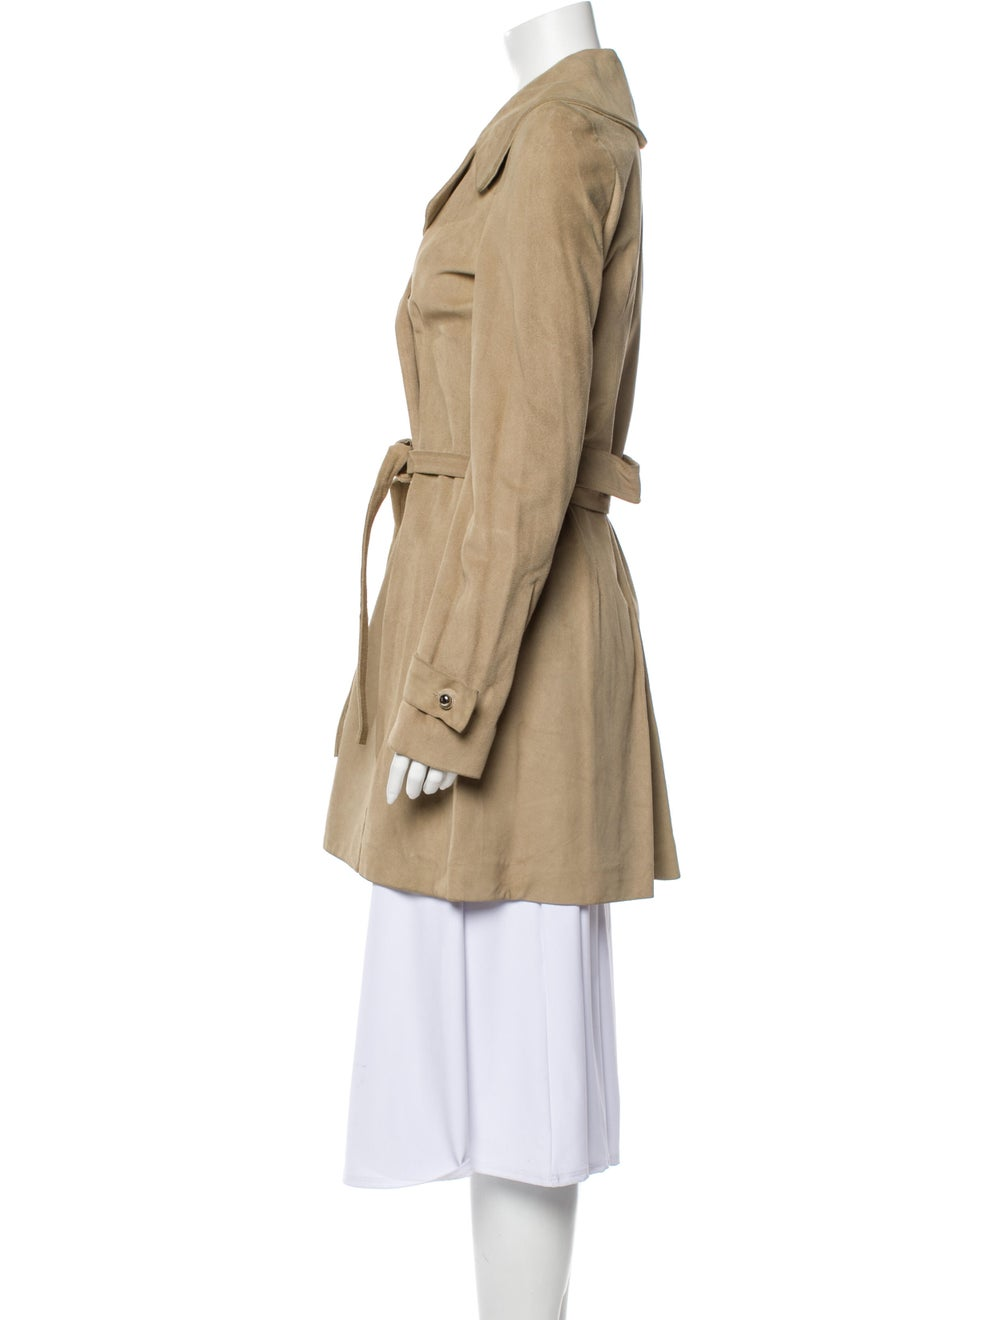 Balenciaga Leather Trench Coat - image 2